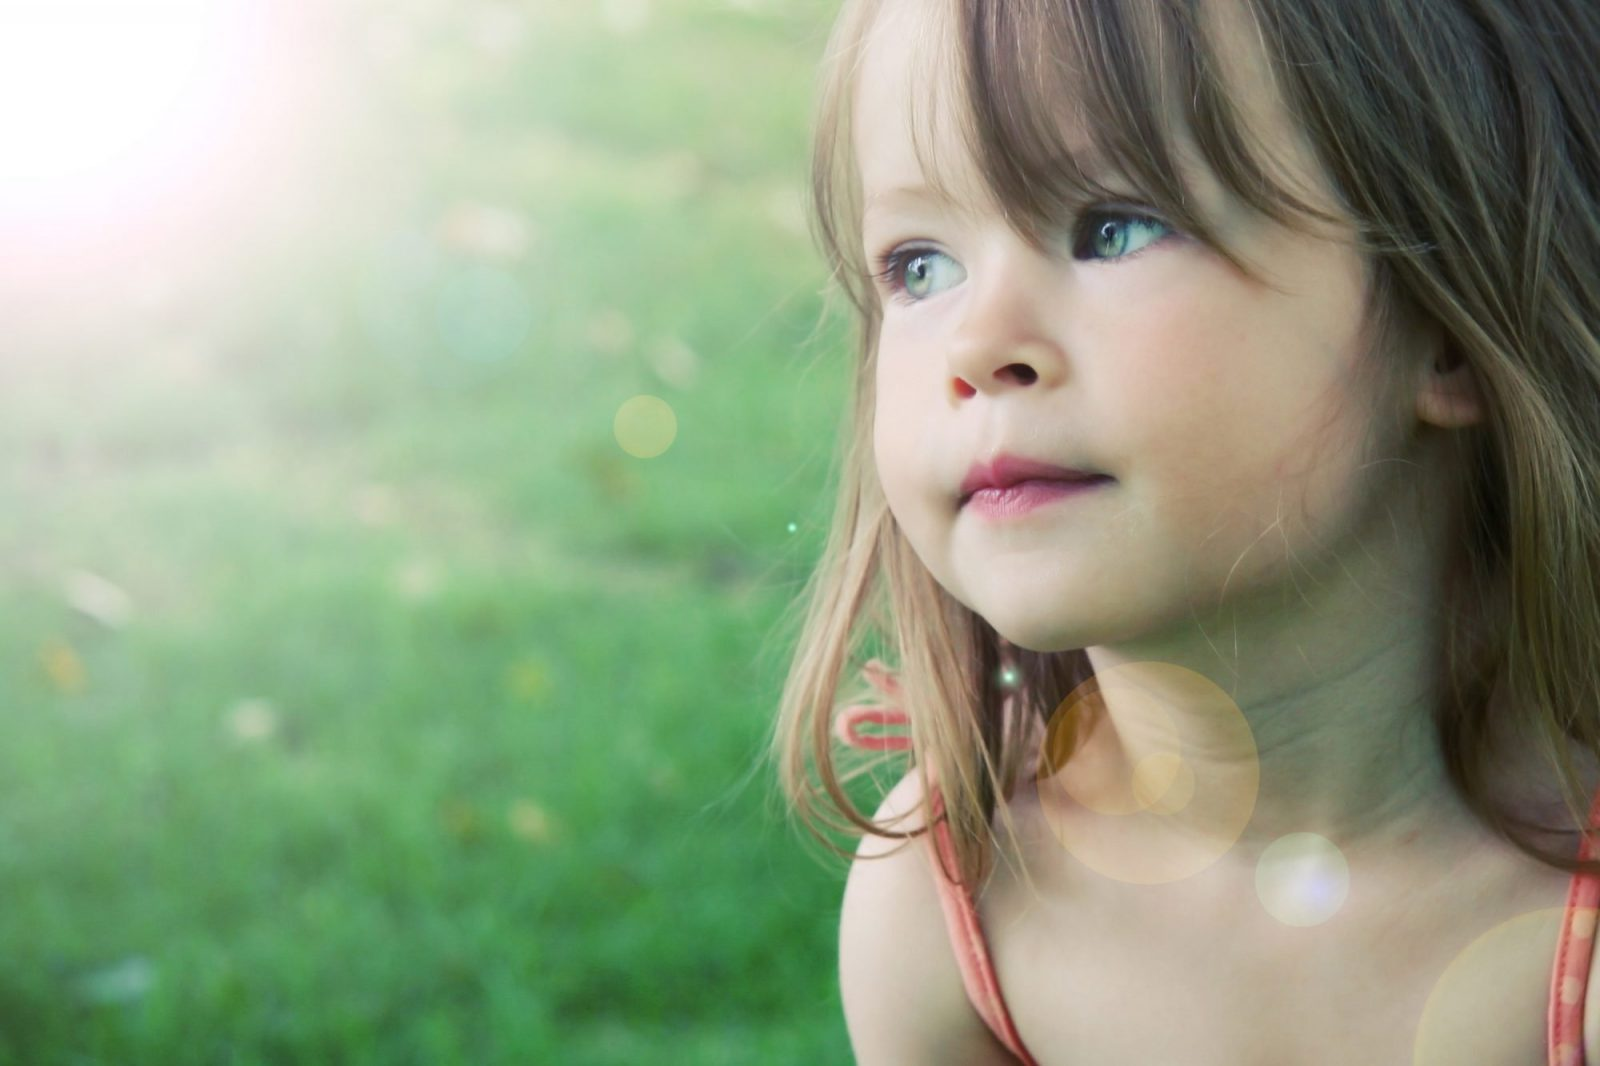 Adorable Little Girl Taken Closeup Outdoors In Summer - Lighting Effect